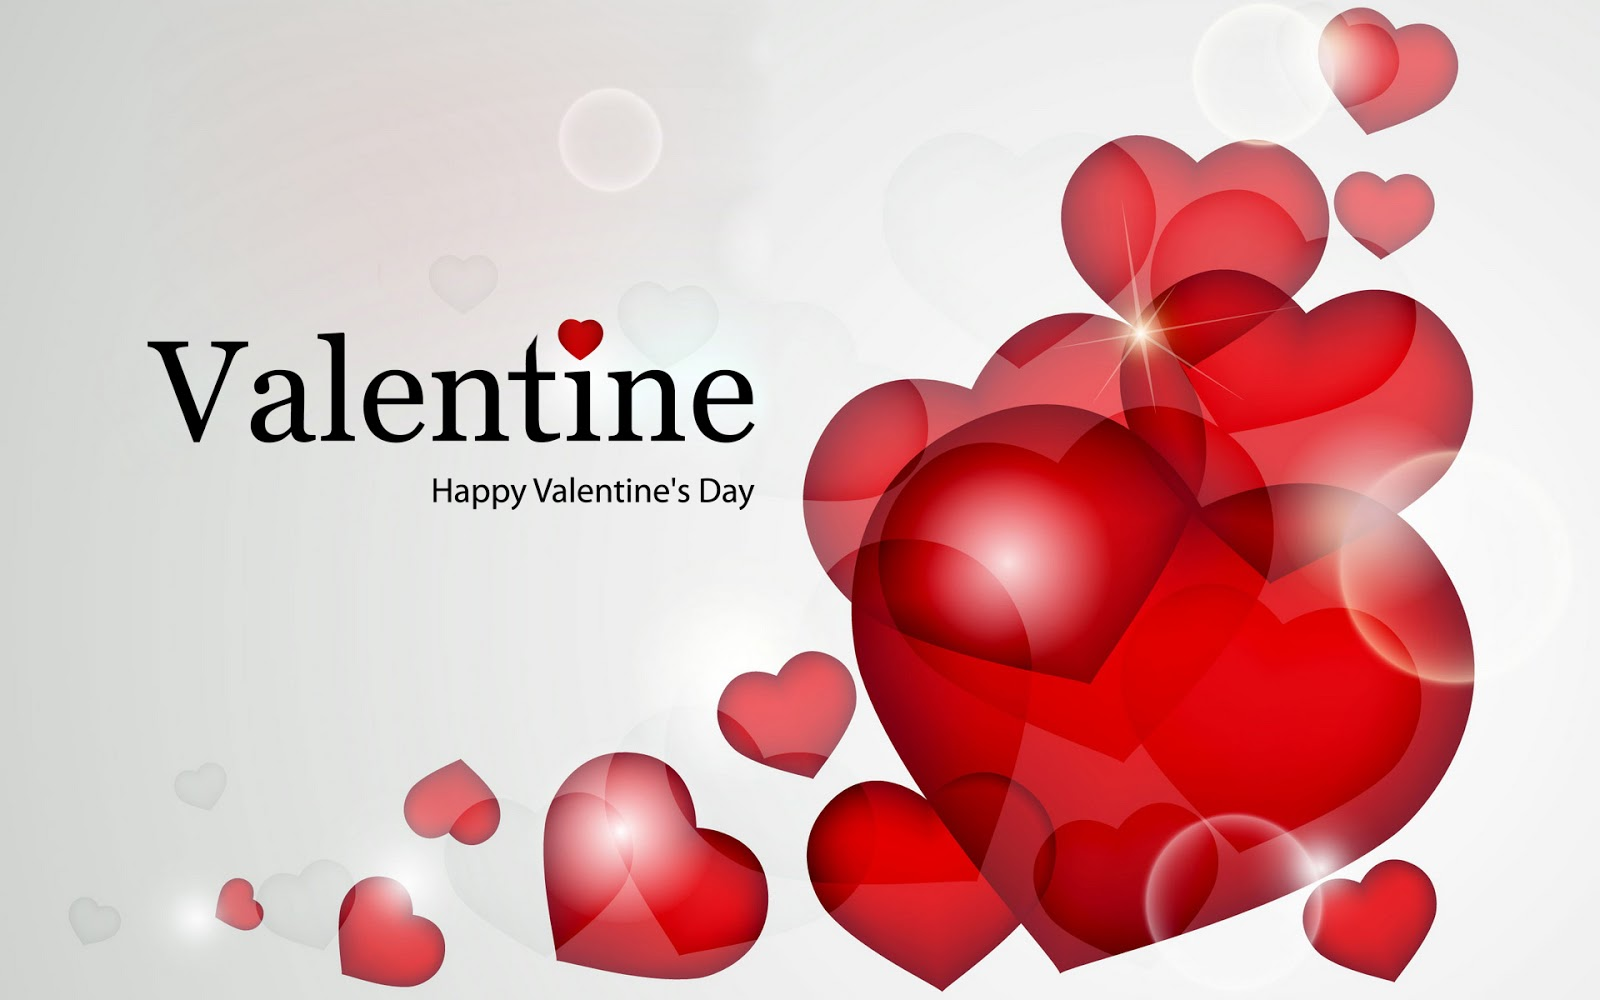 Best 40 Happy Valentines Day 2017 HD Wallpapers 1024x768 – Valentine Day Cards for Girlfriend